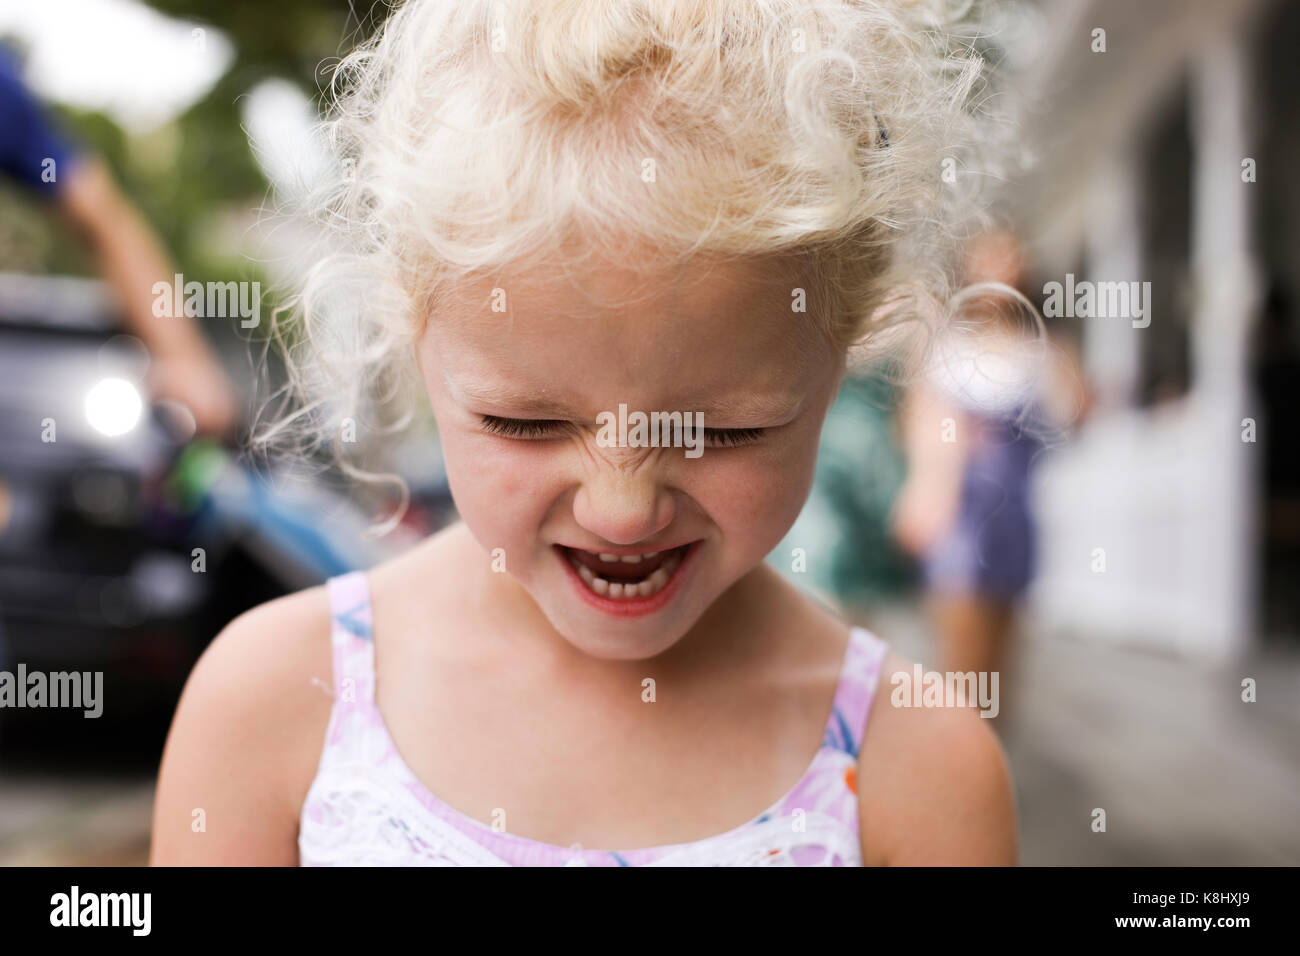 Close-up of girl making face - Stock Image